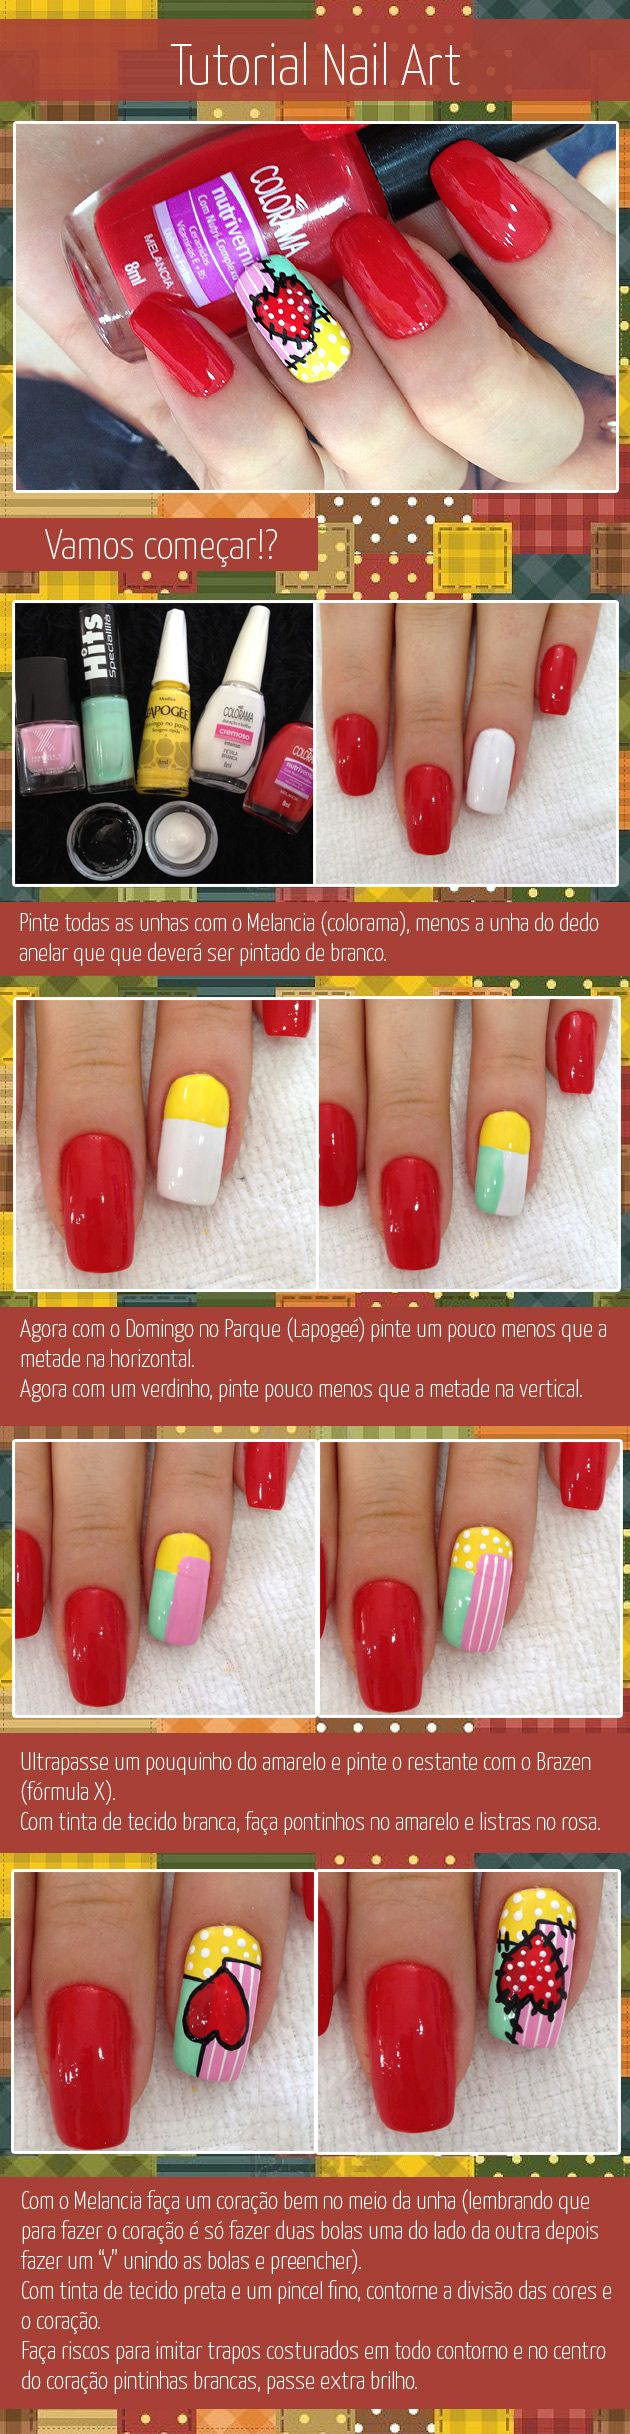 72 best Nail Art images on Pinterest | Tutorial nails, Cute nails ...